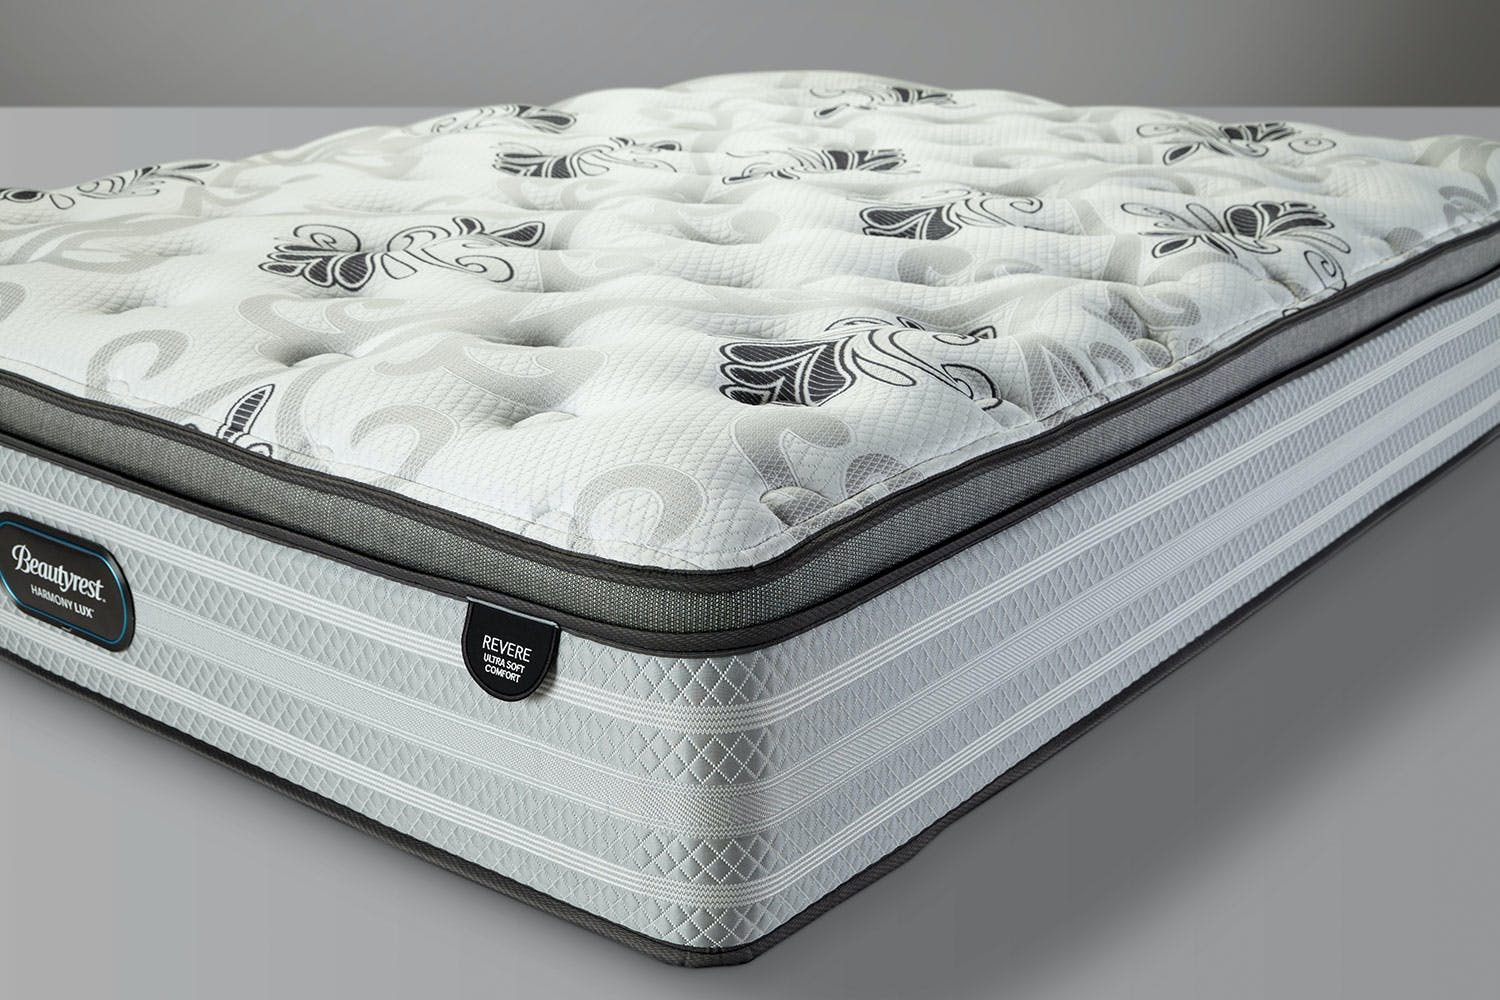 Revere Extra Soft King Mattress by Beautyrest